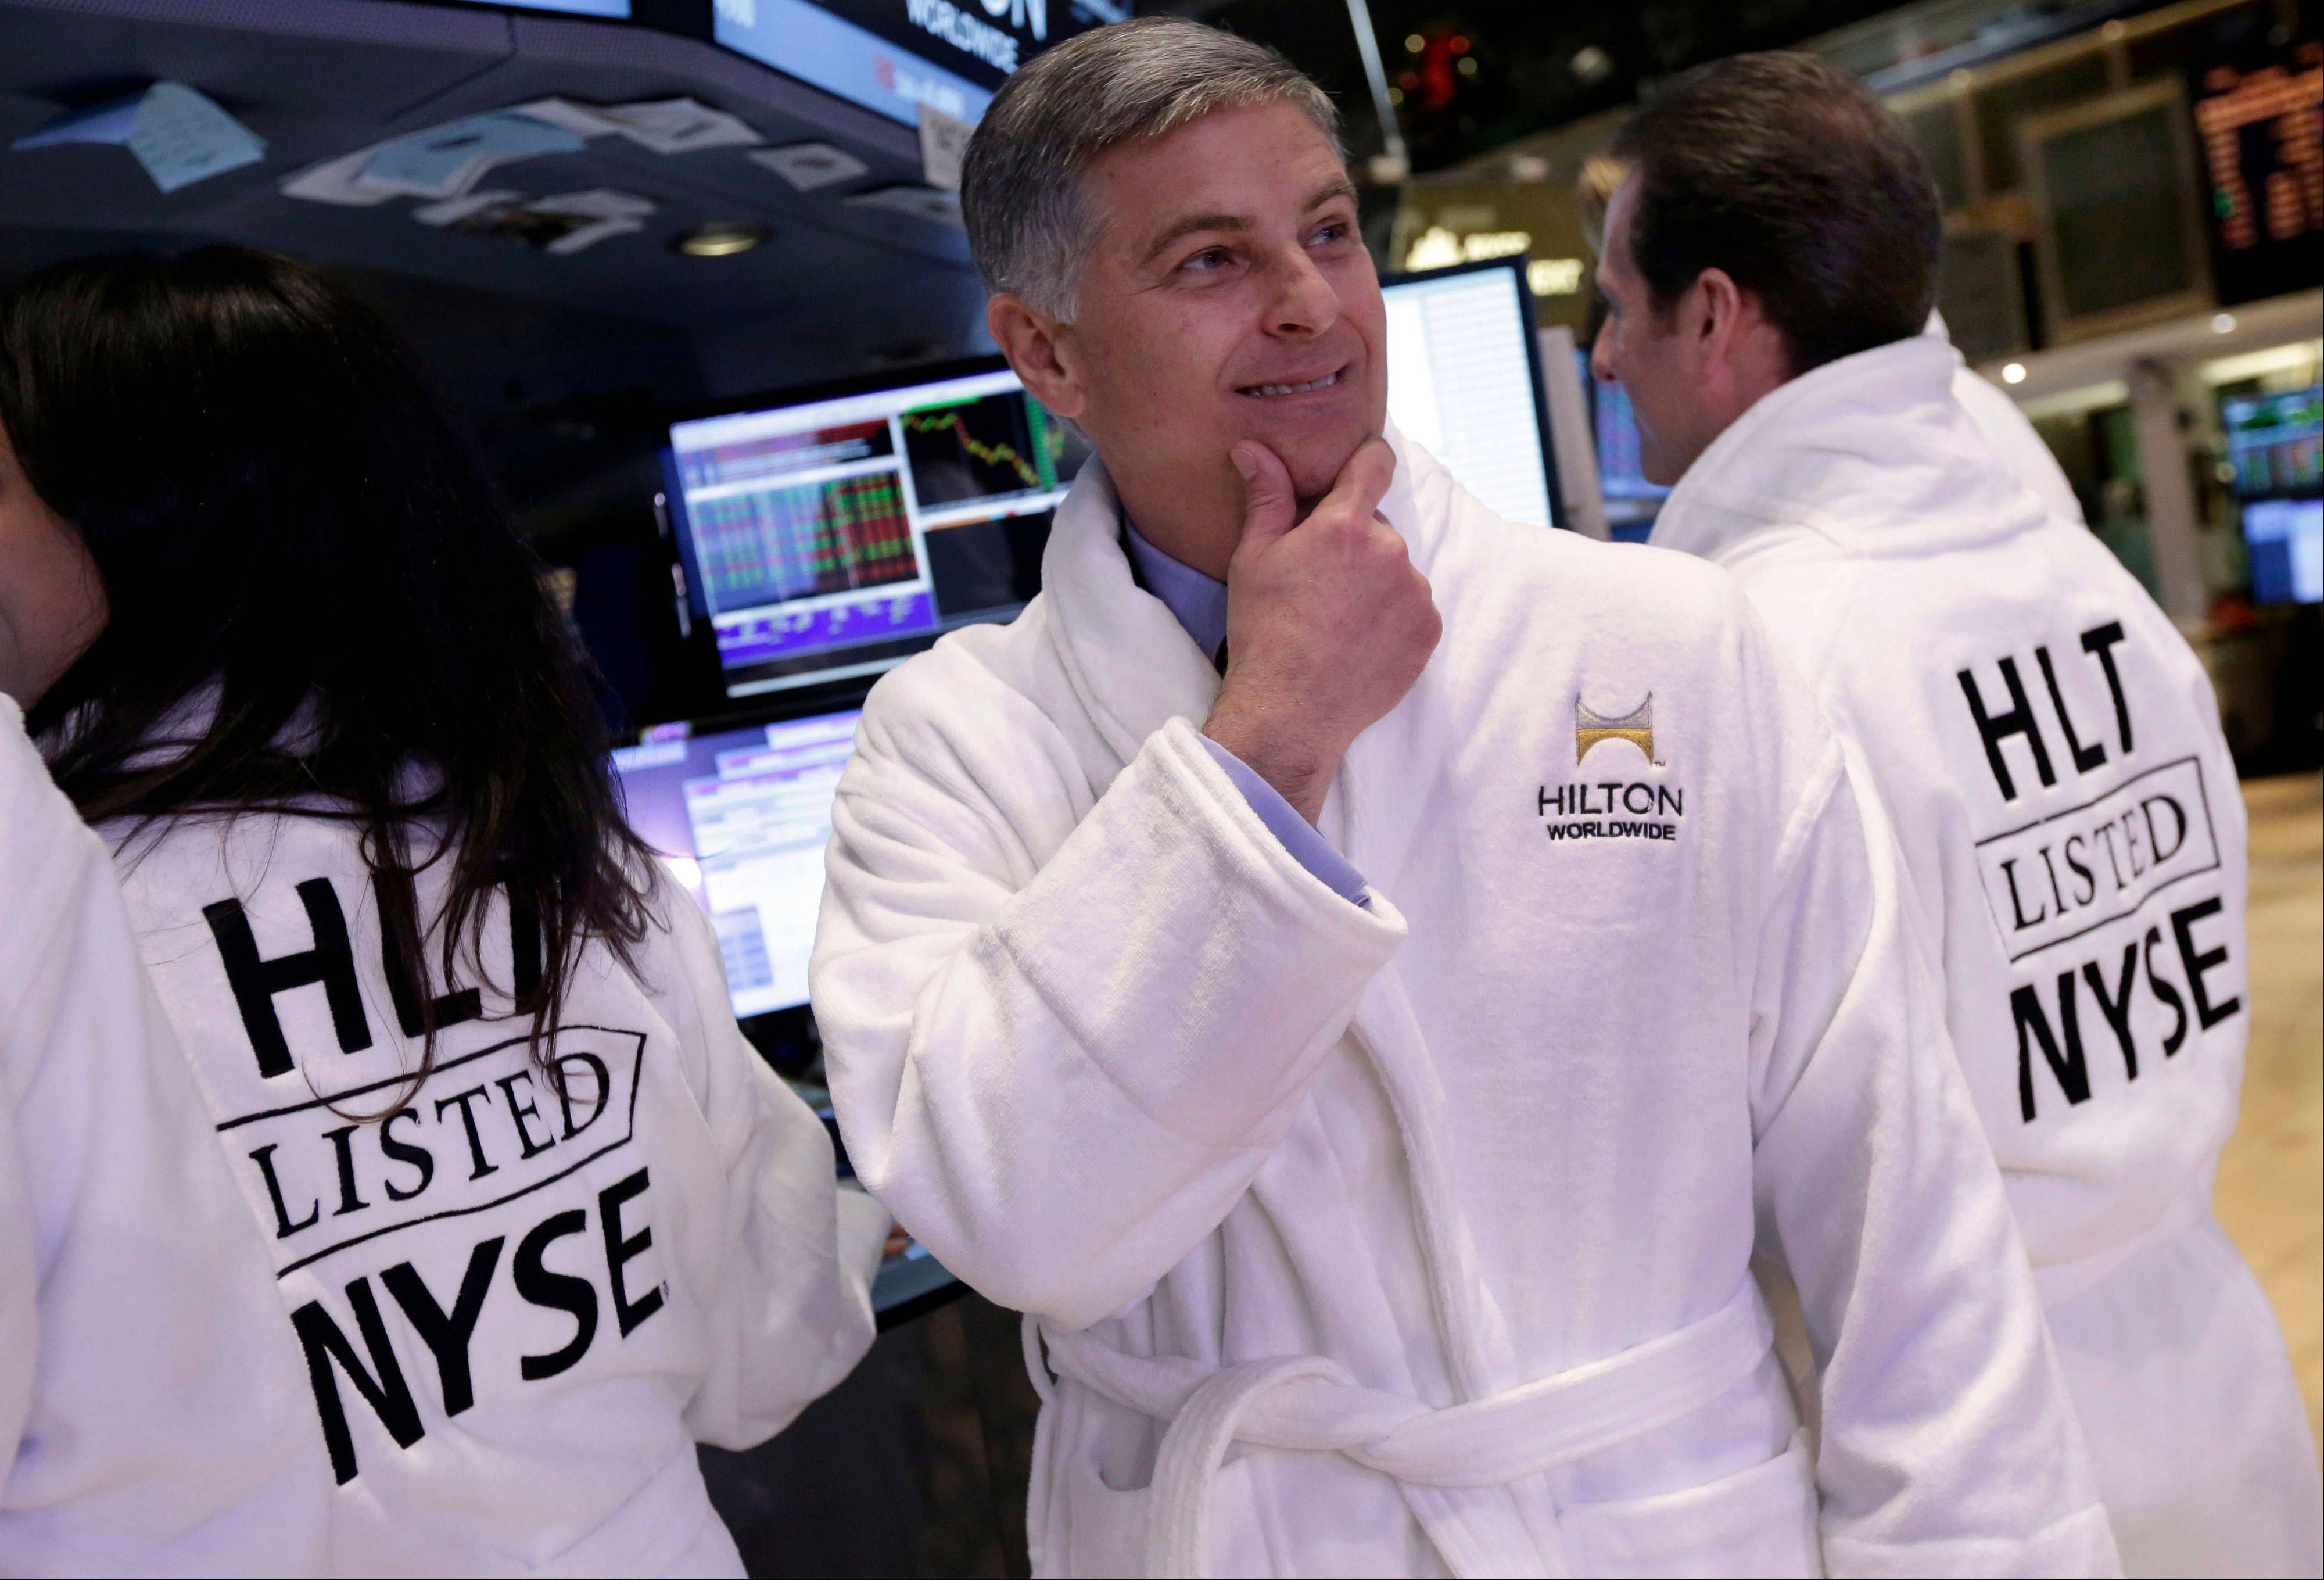 CEO of Hilton Worldwide Christopher Nassetta, center, poses in a Hilton robe after his company's IPO began trading on the floor of the New York Stock Exchange Thursday. Hilton Worldwide Holdings Inc. is the world's largest hotel group, with 665,667 rooms across 90 countries and territories.